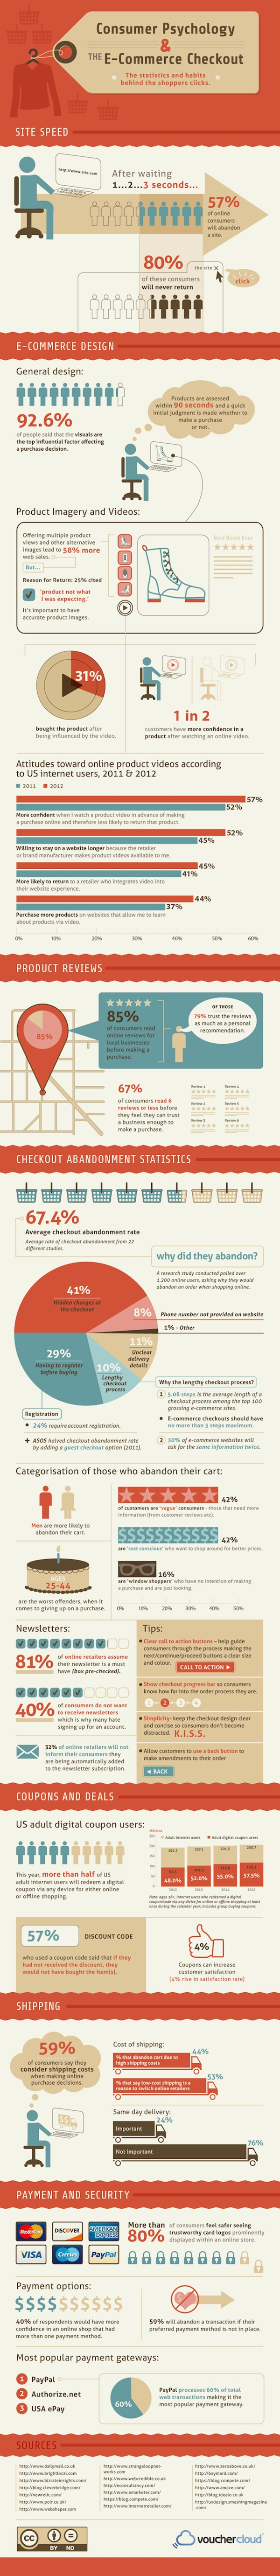 Consumer-Psychology-Infographic